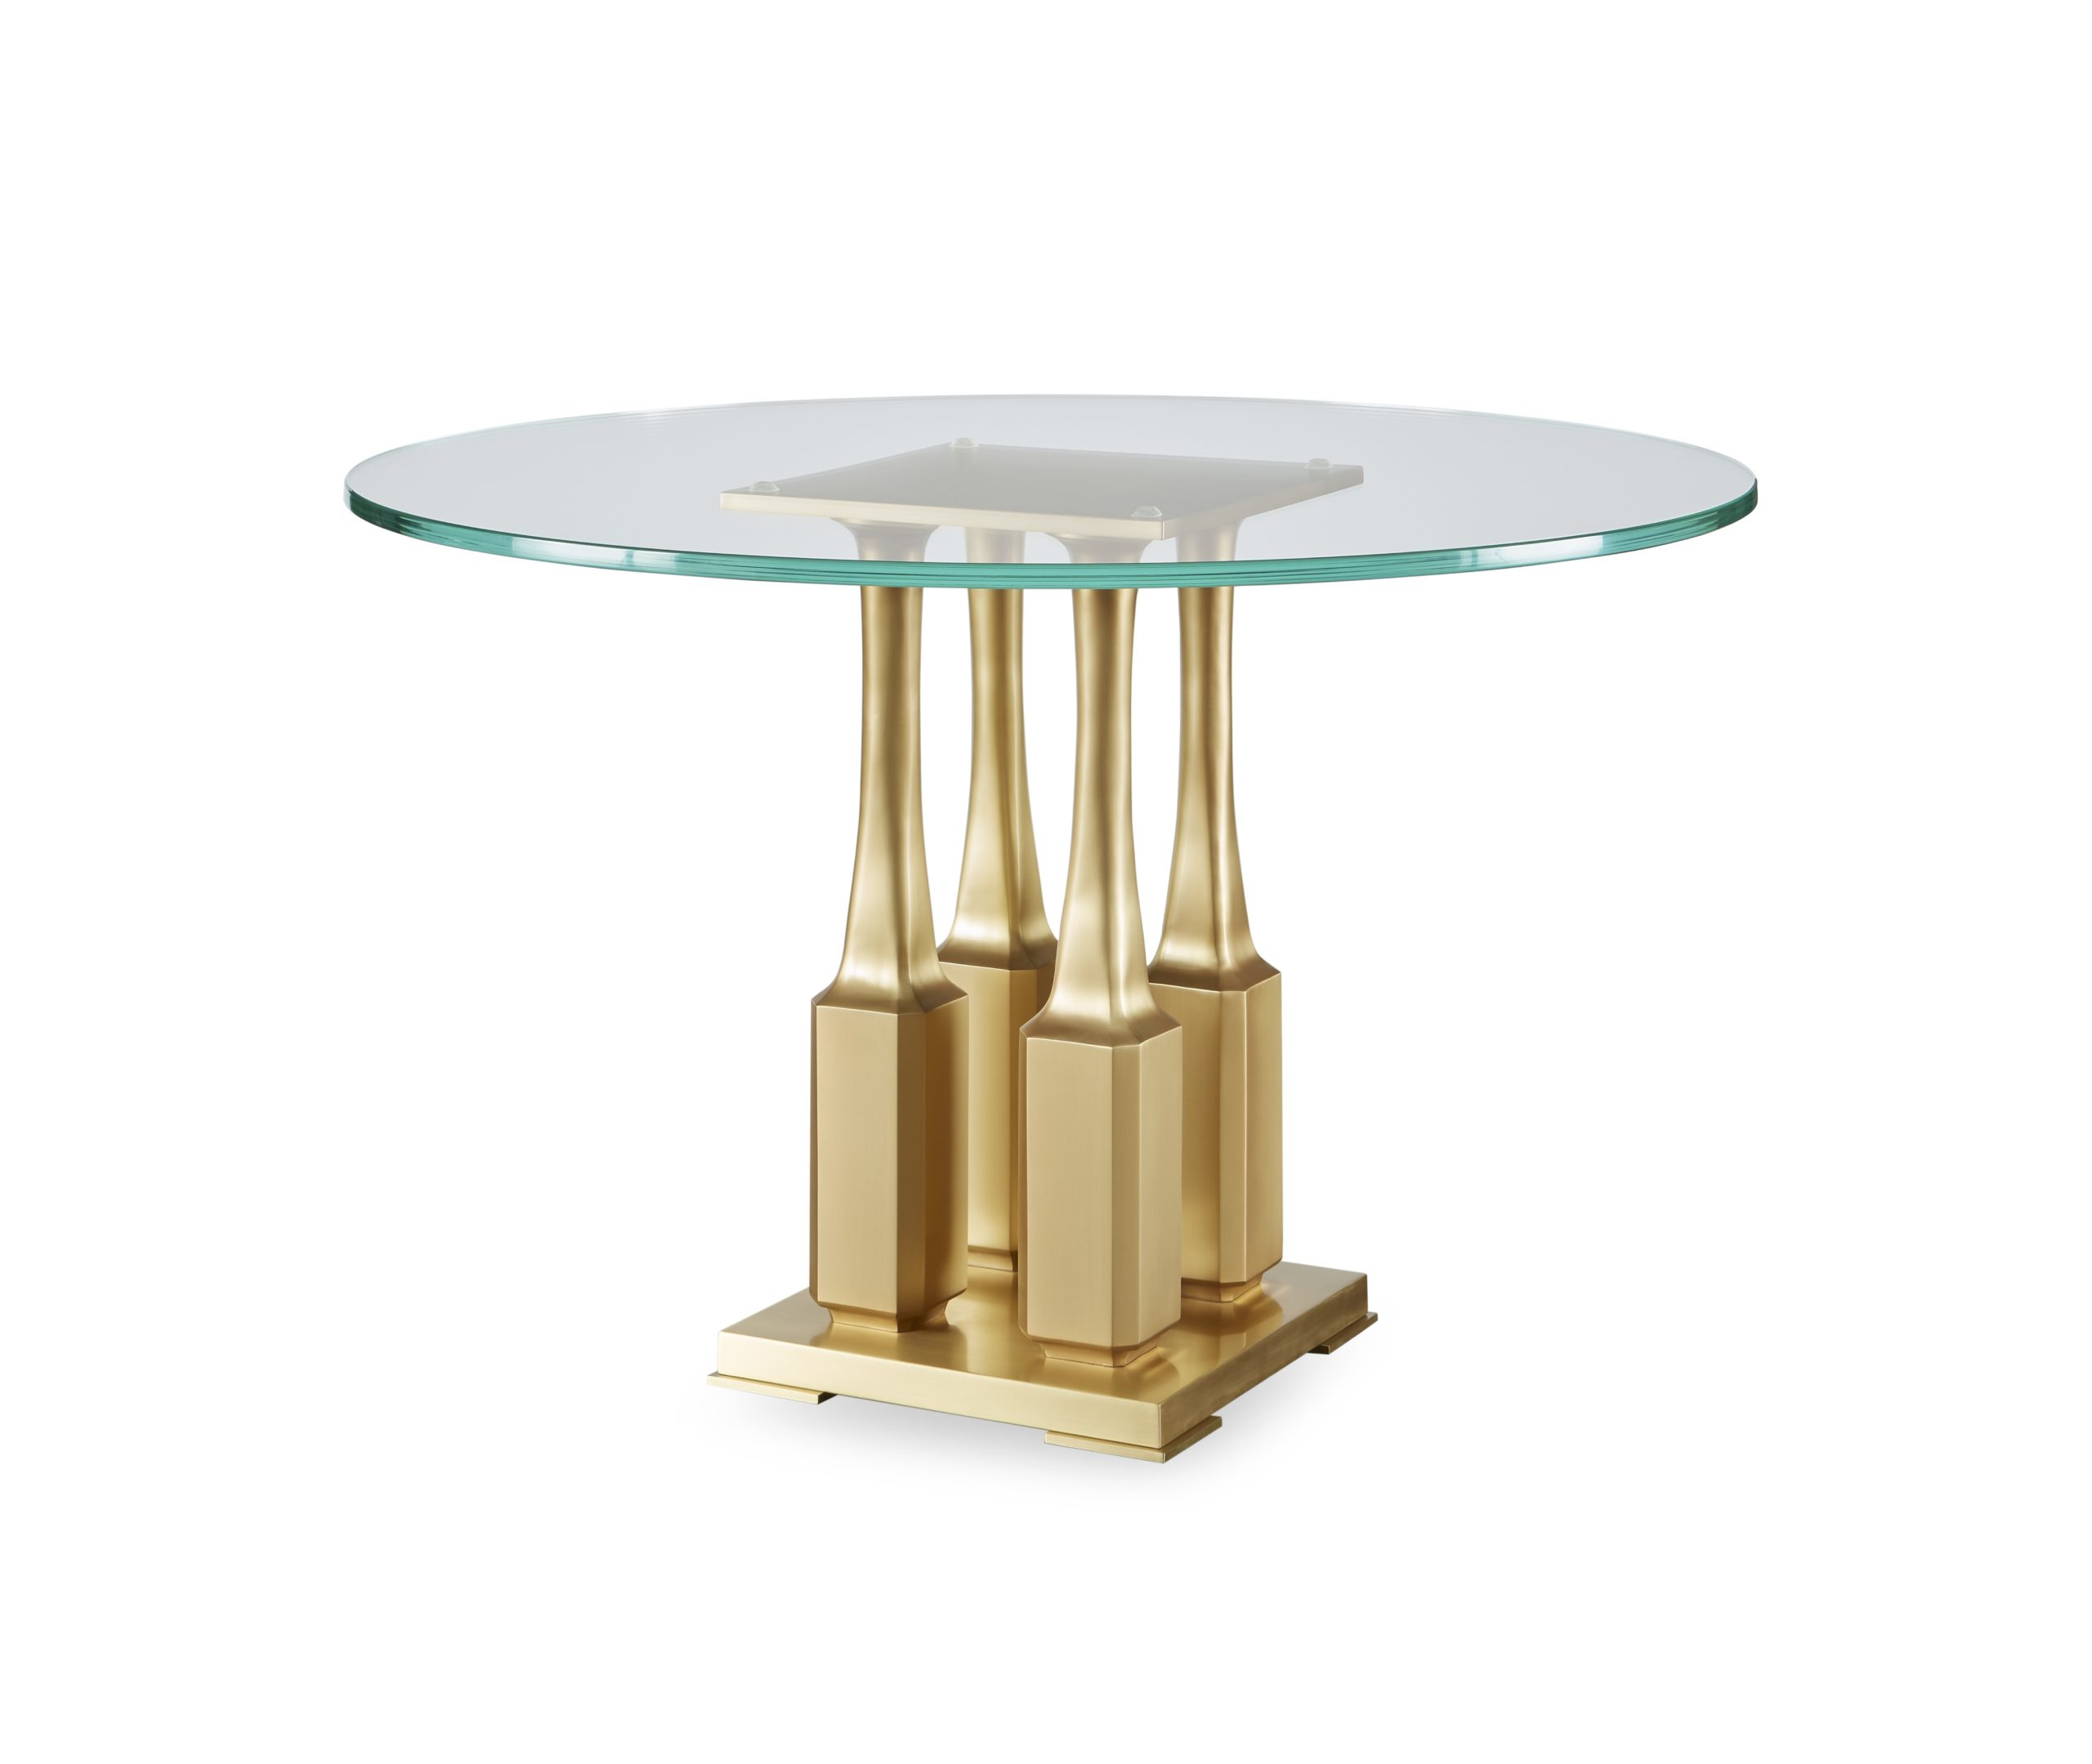 Baker_products_WNWN_villa_dining_table_BAA3237_ROUND_FRONT_3QRT-scaled-2